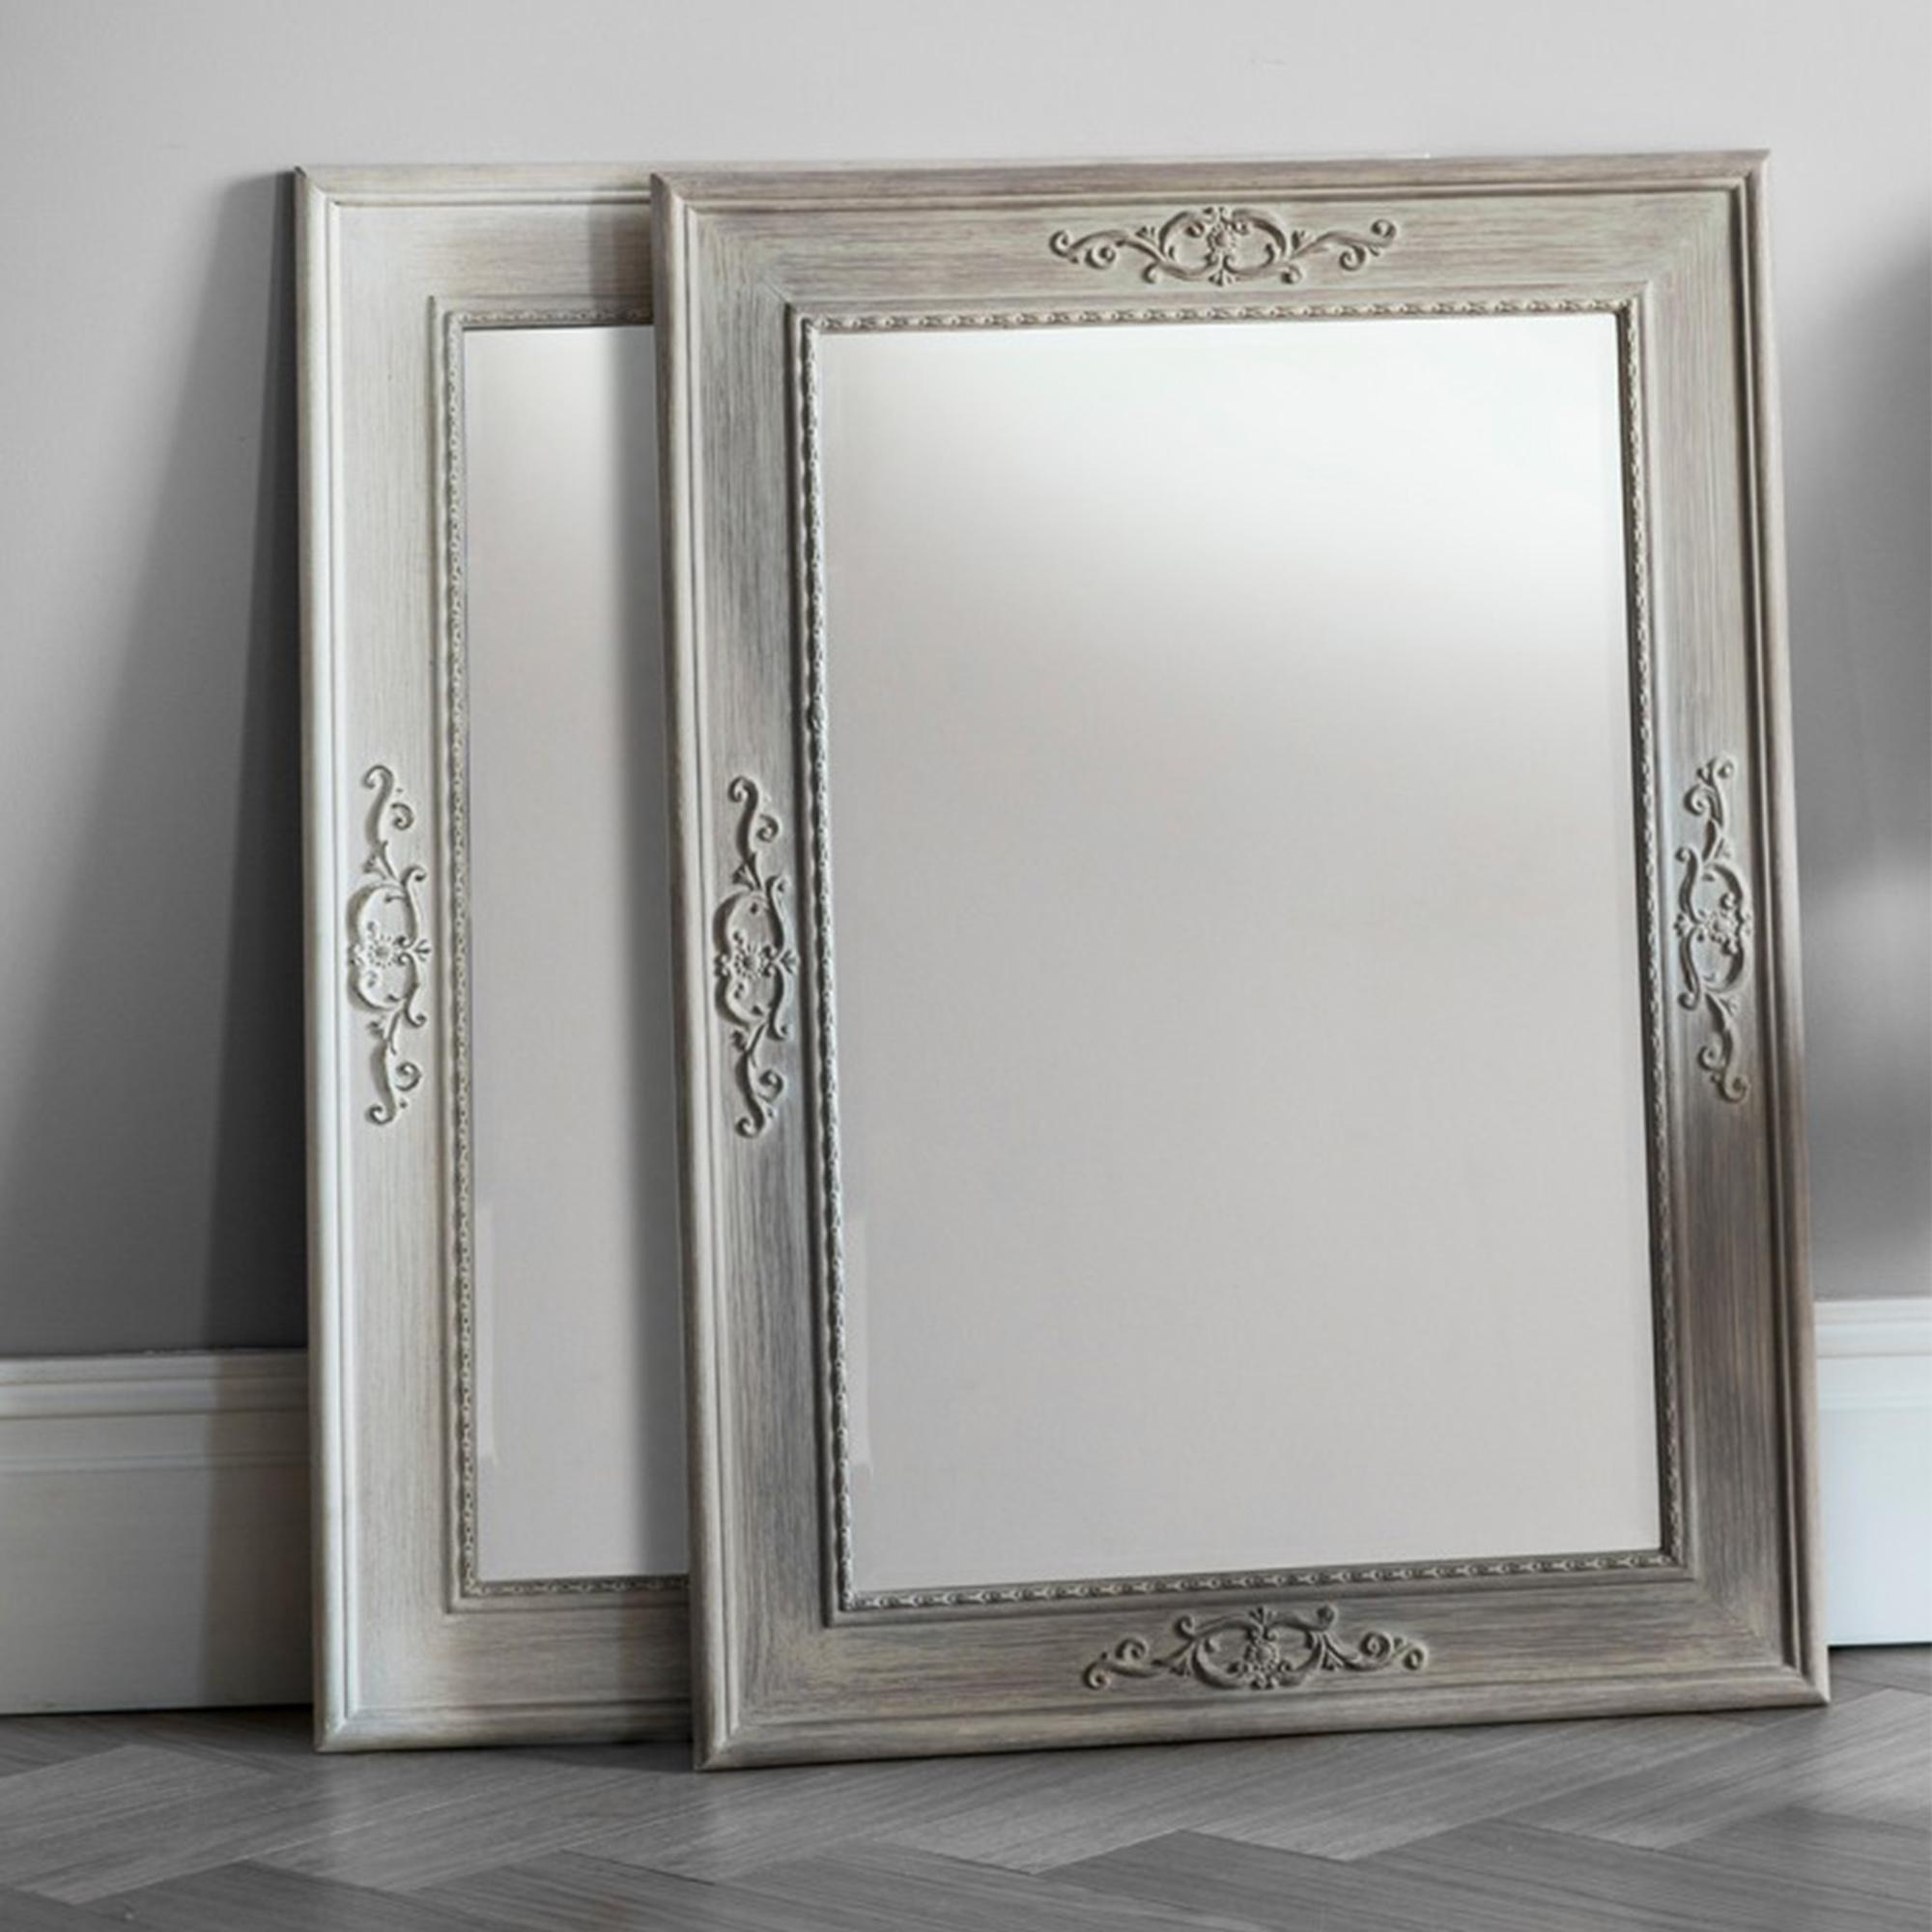 Antique French Style Wall Mirror Within French Style Wall Mirror (Image 4 of 20)